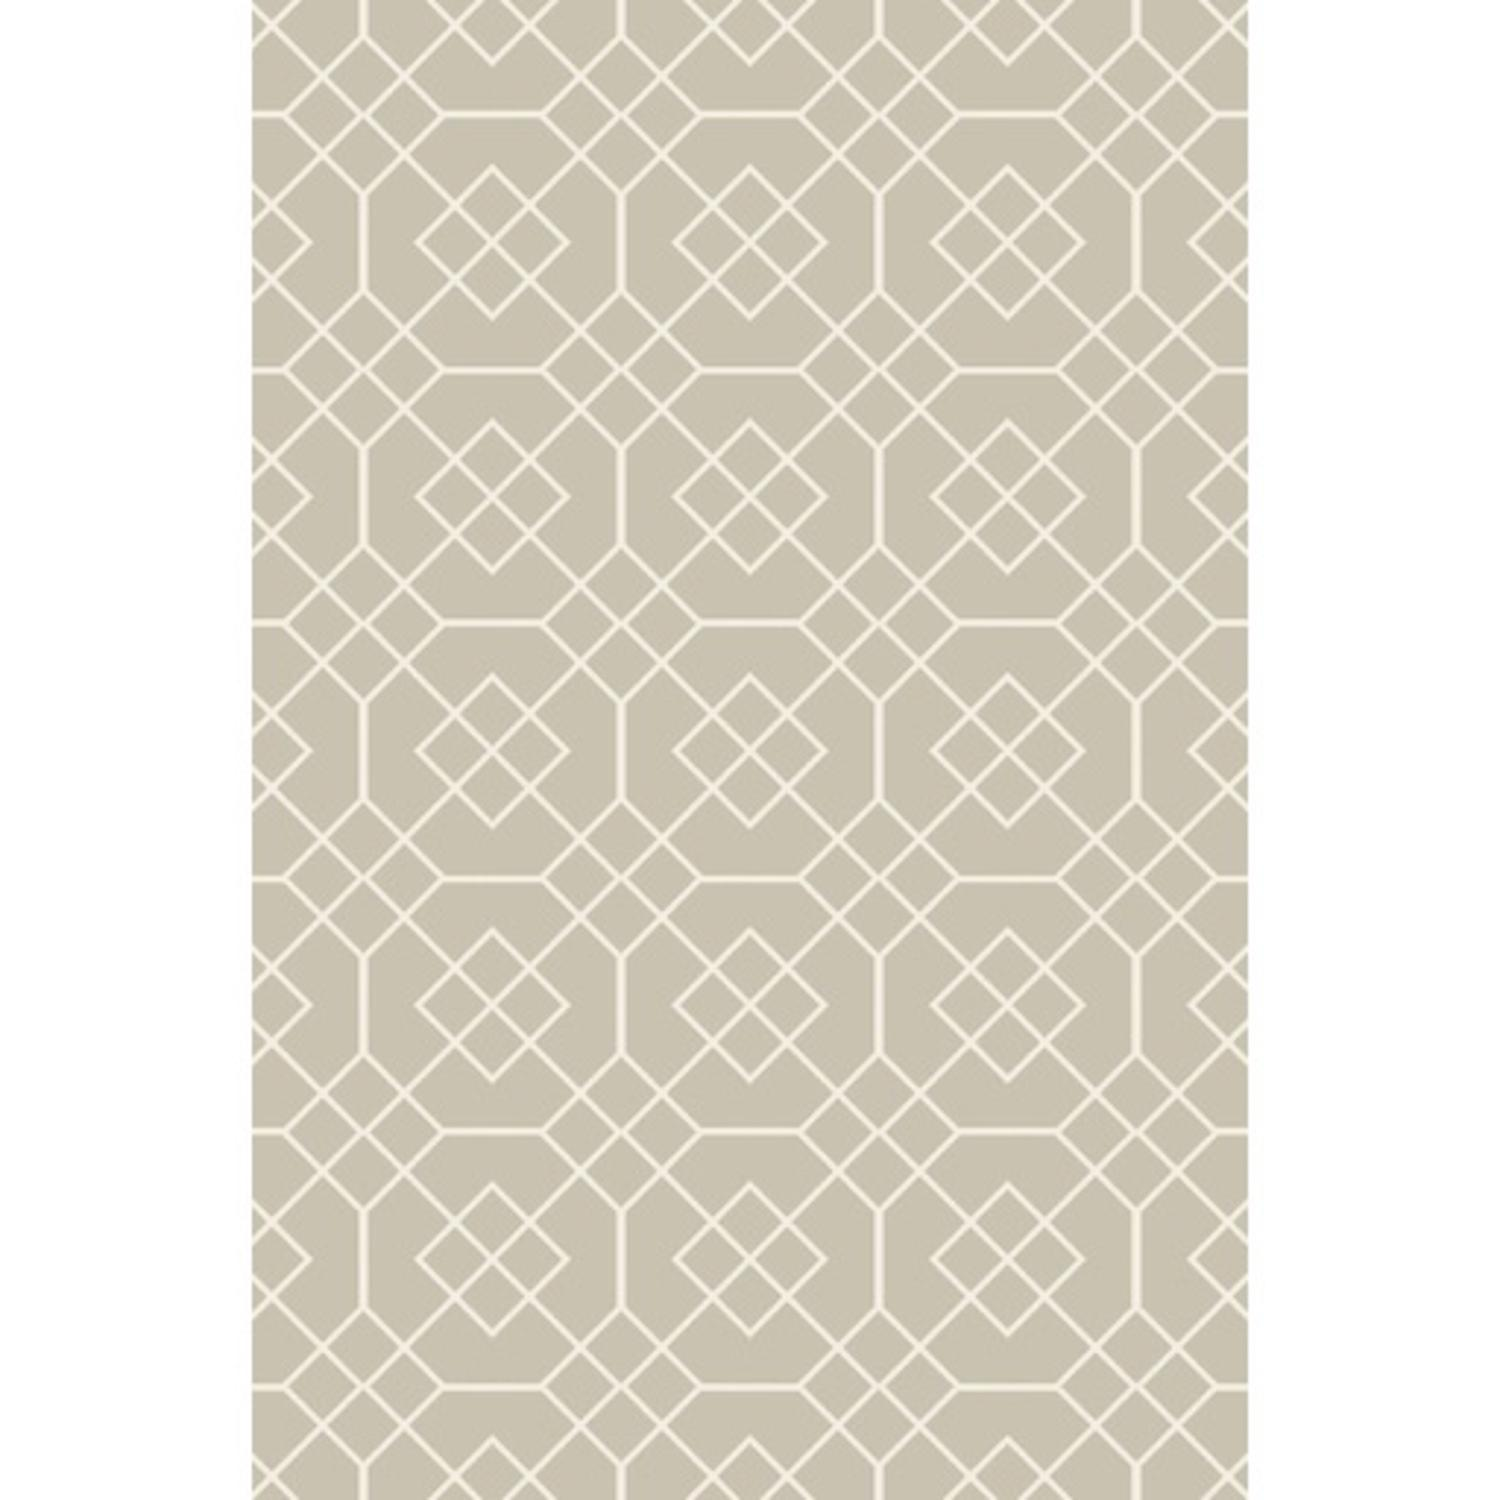 5' x 7.5' Urban Treasures Dew Green and Ivory White Area Throw Rug